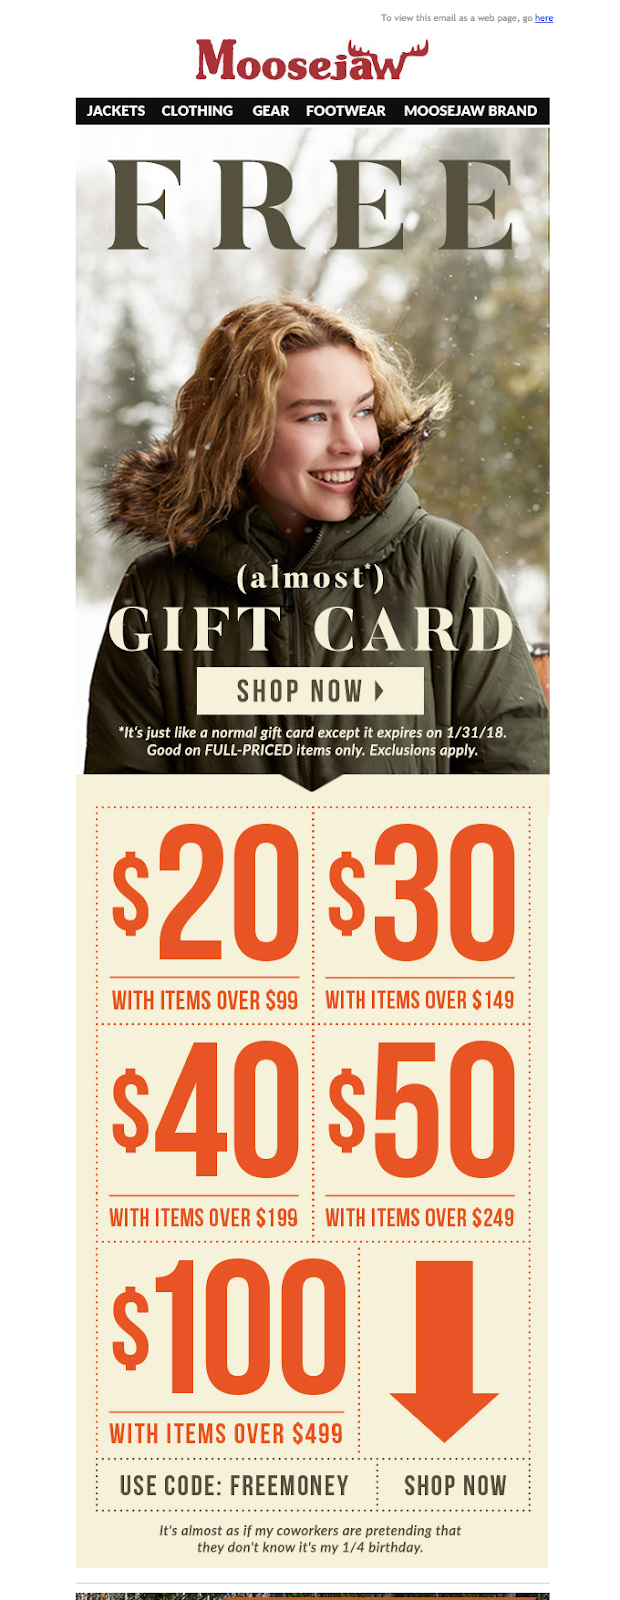 Moosejaw has tiered coupons available.